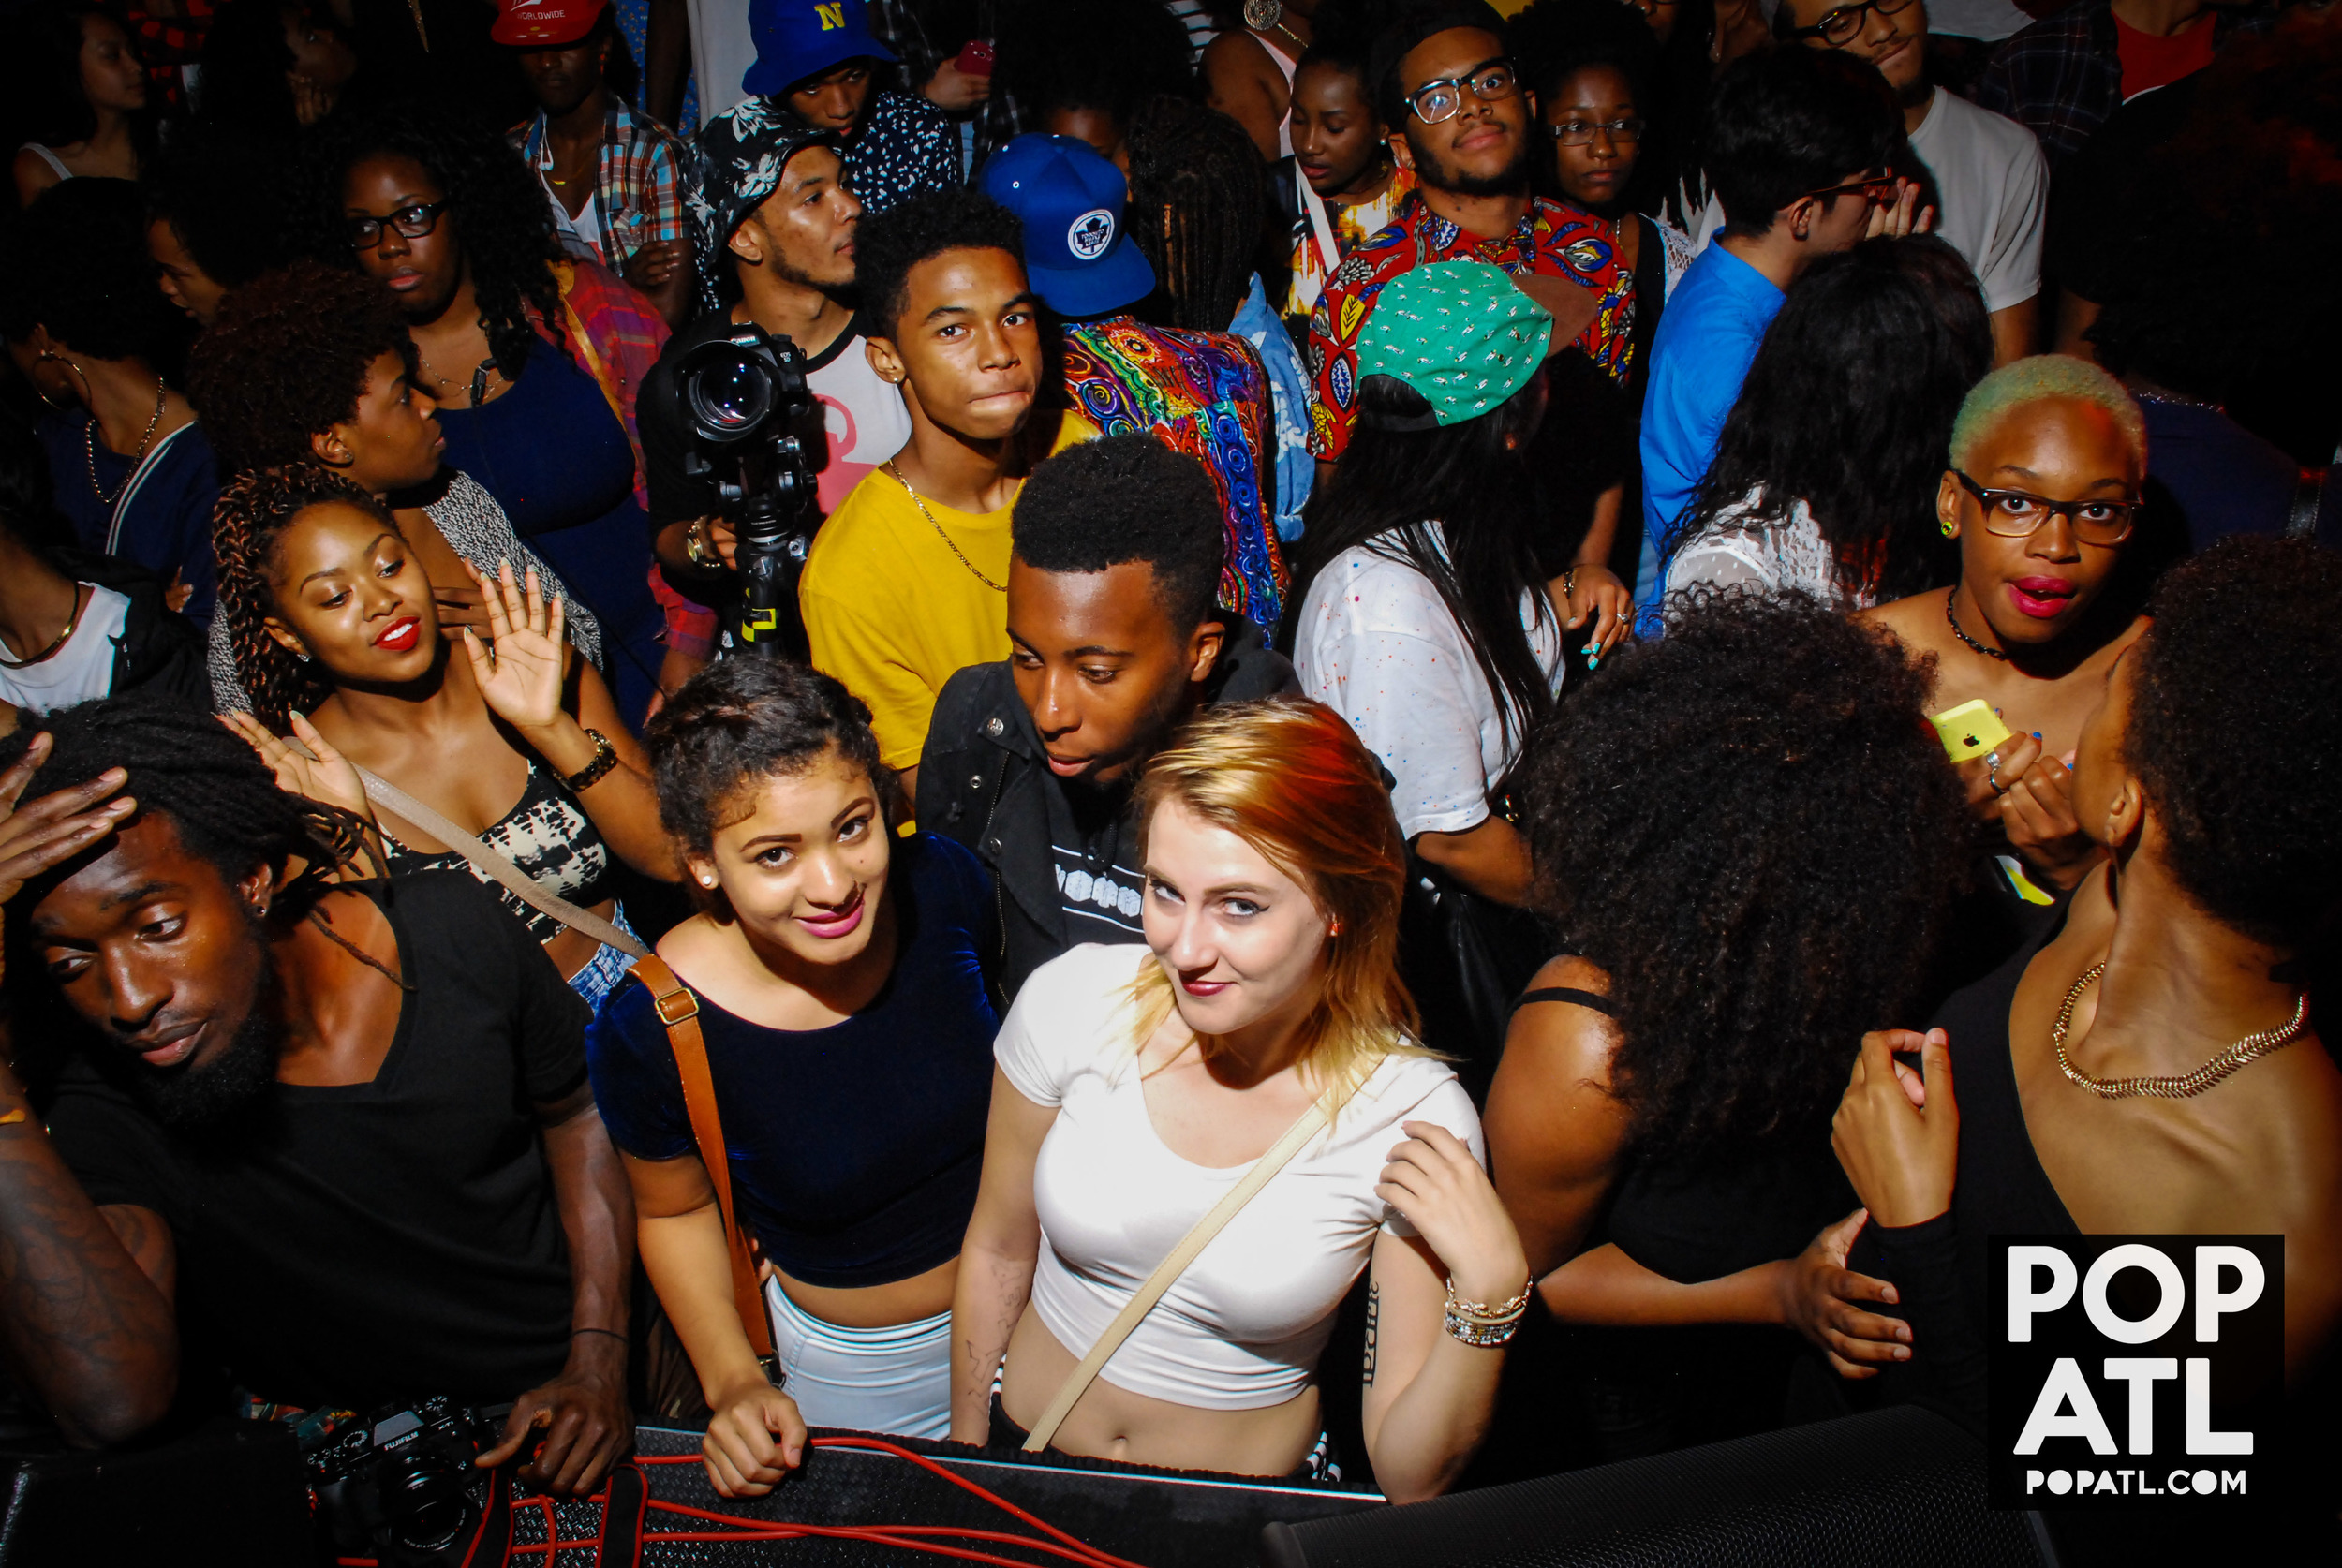 RAURY-RAURFEST-AT-POP-ATL-98.jpg